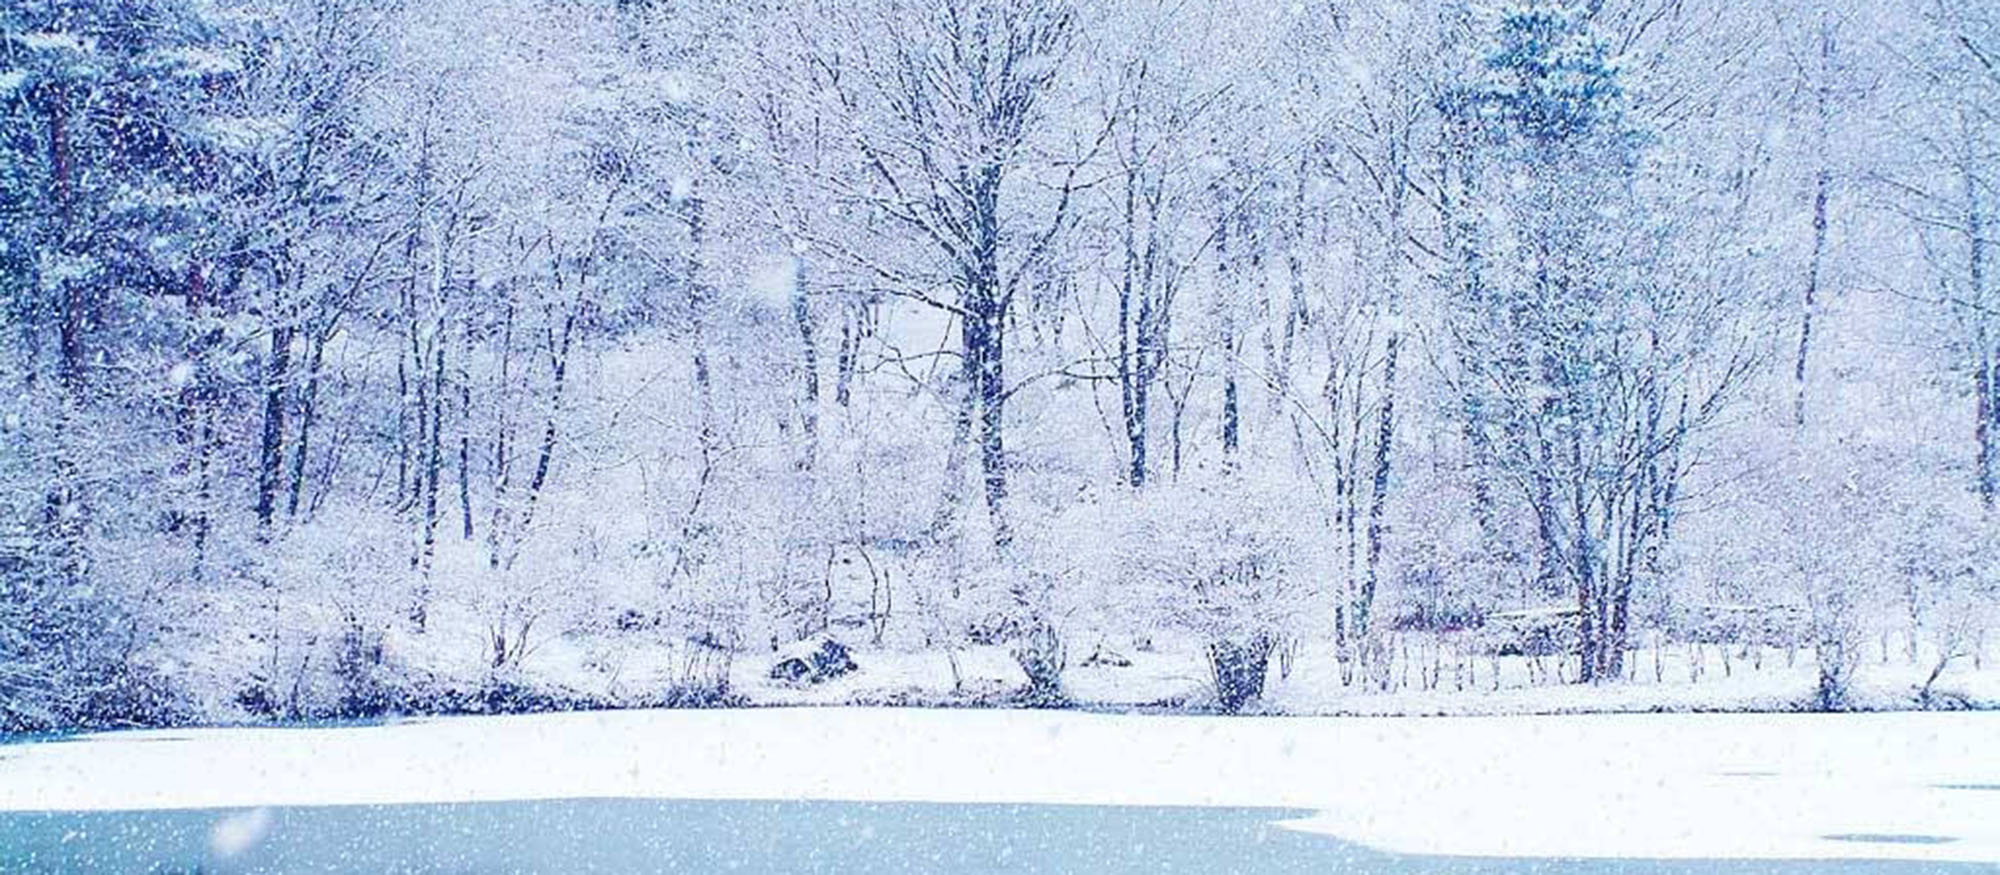 Snow covered image of a lake in winter time.